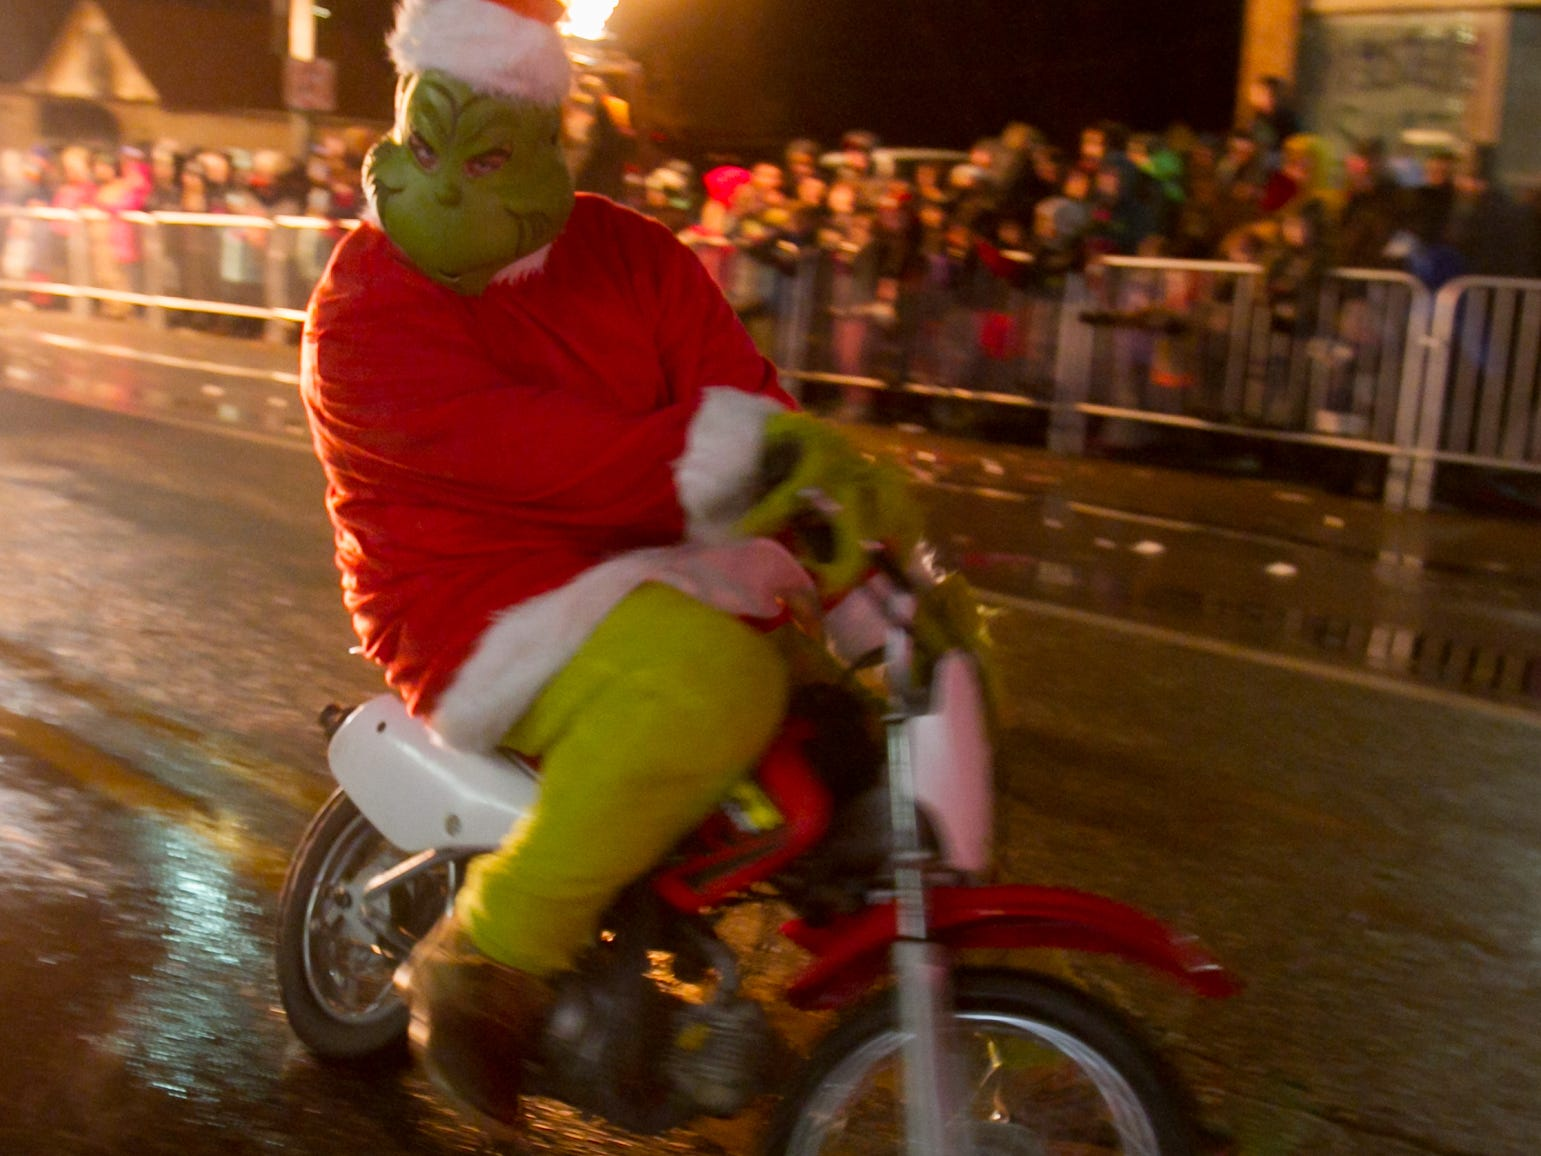 The Grinch tore up the parade route in the Christmas in the 'Ville parade Saturday, Dec. 1, 2018.